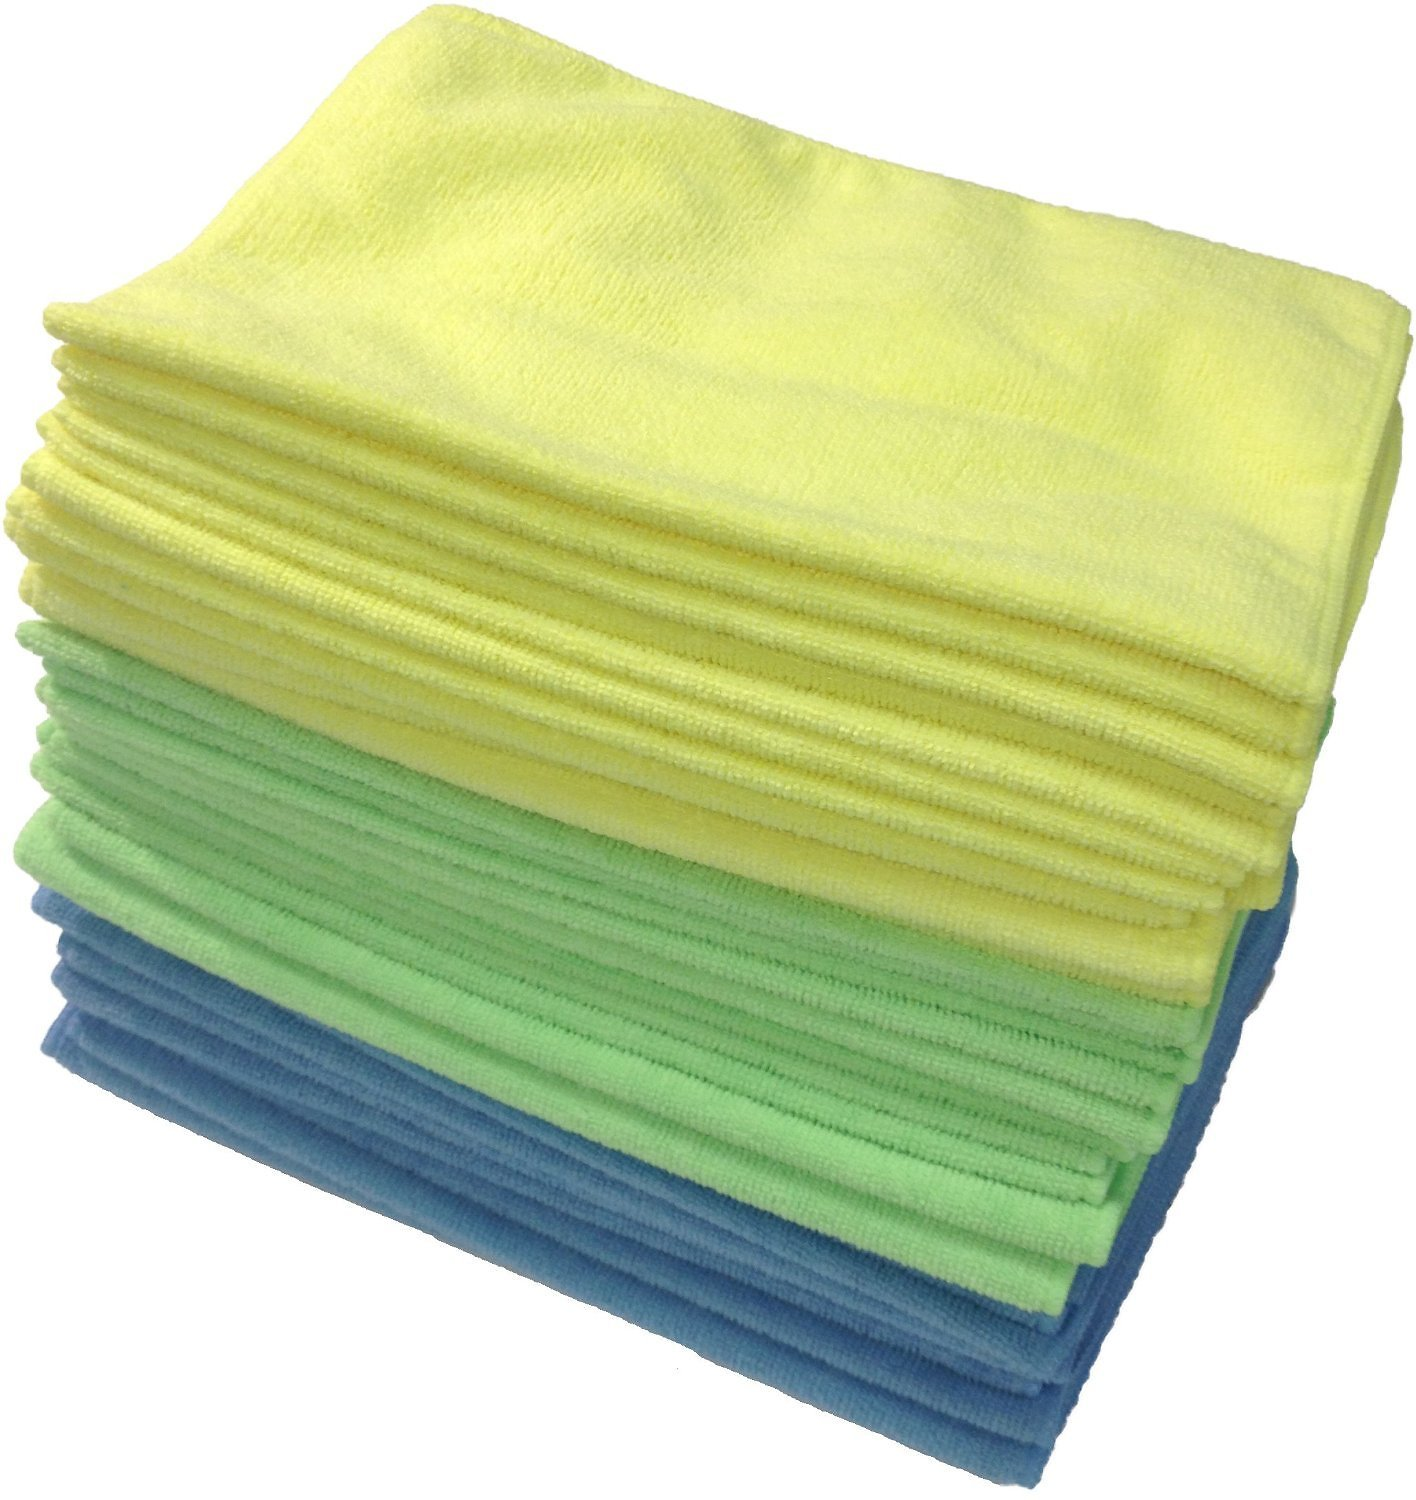 36-Pack Zwipes Microfiber Cleaning Cloths